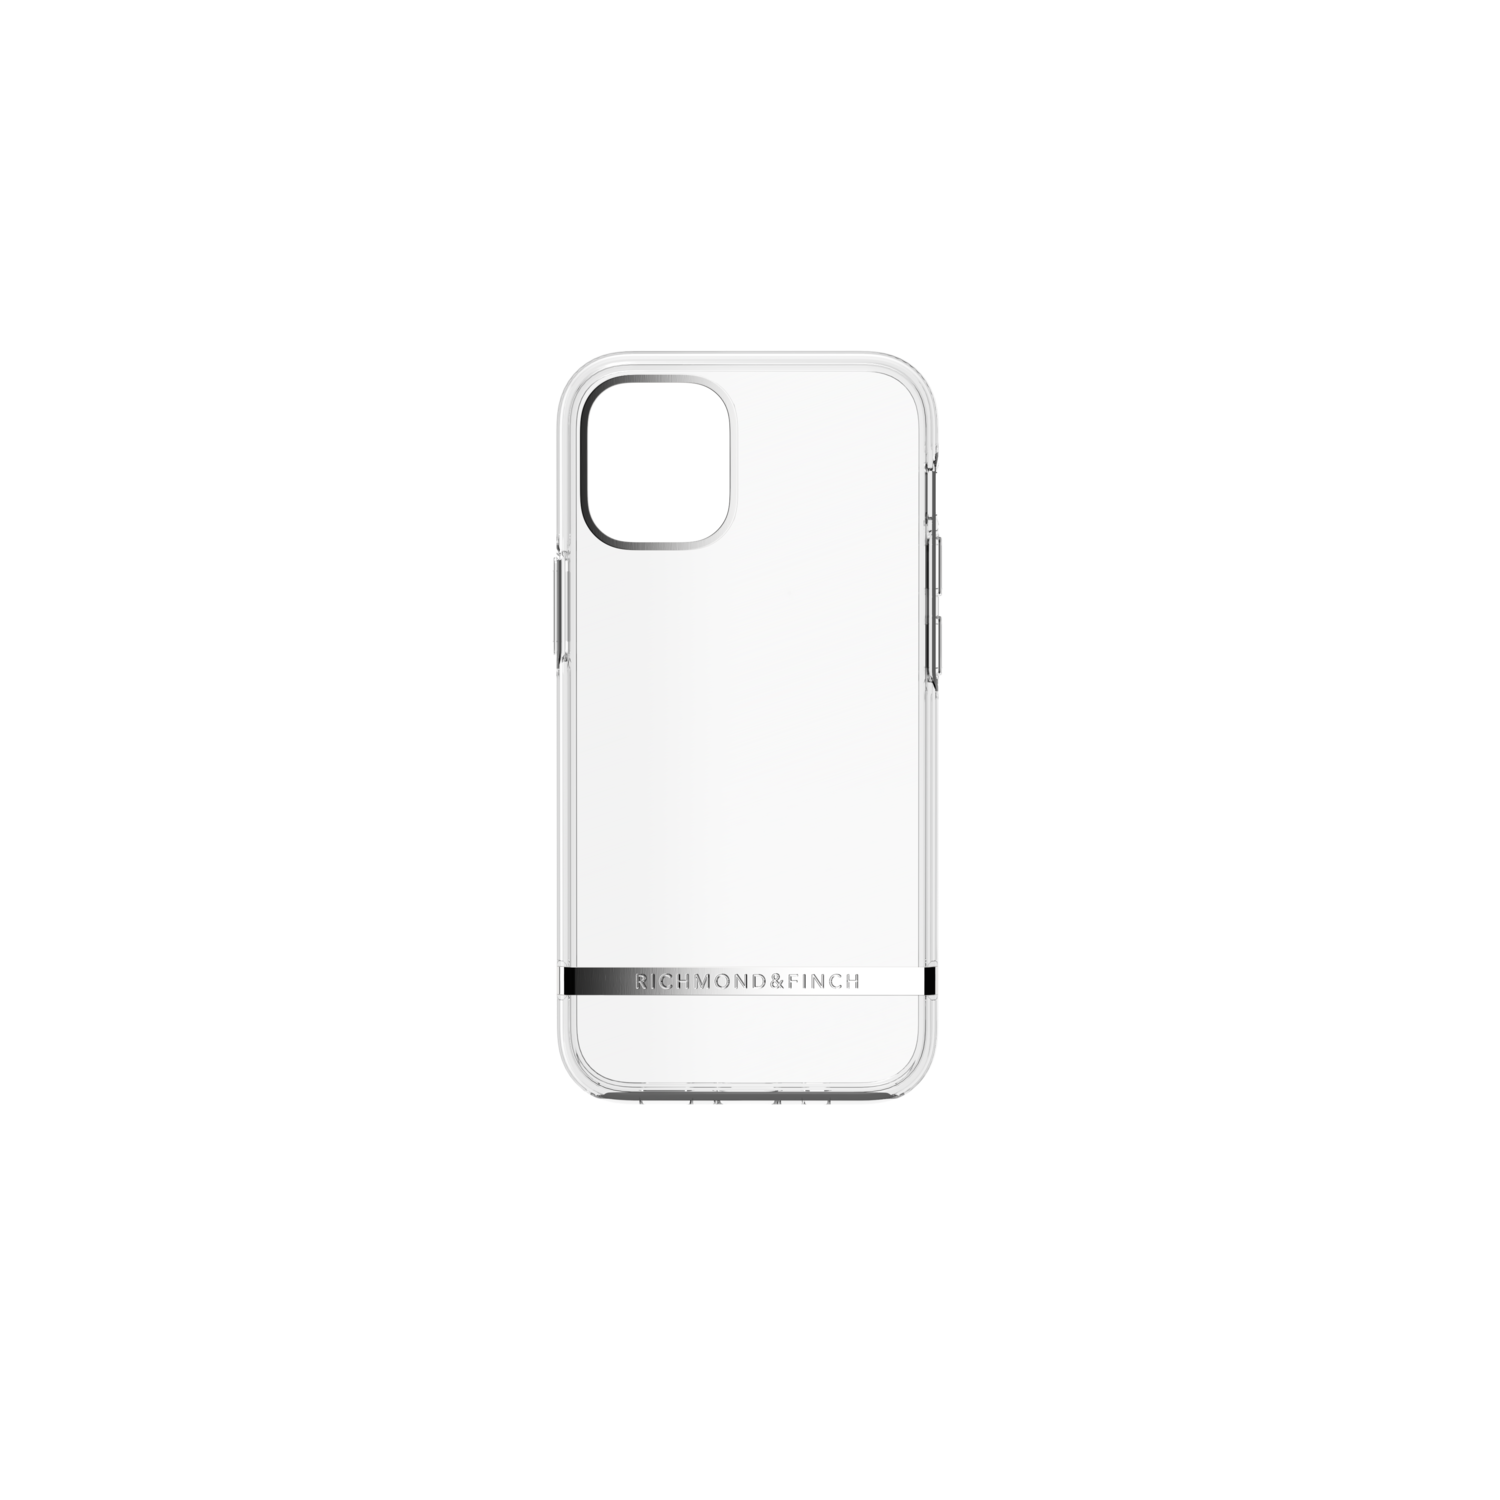 Richmond & Finch Clear Case for iPhone 12 mini clear